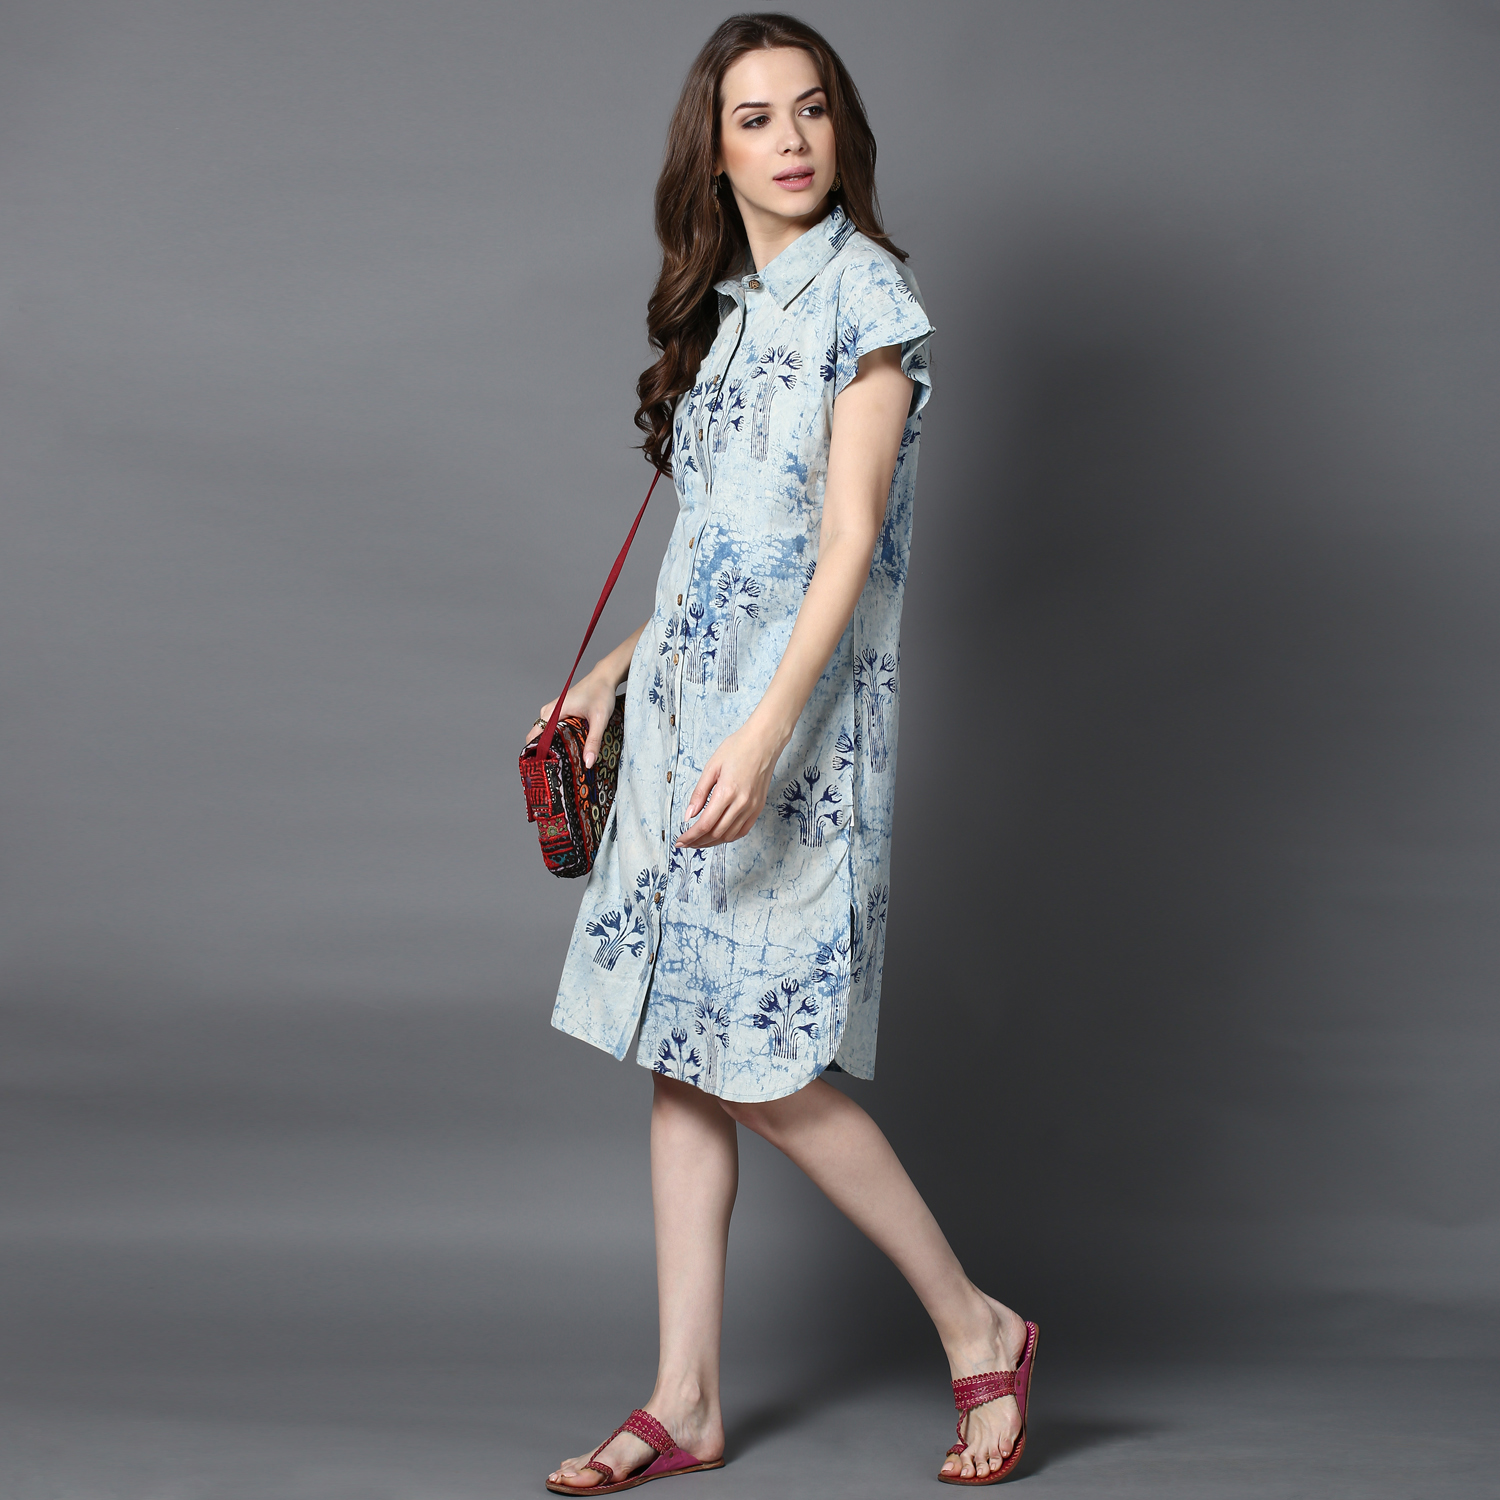 Blue dabu block-printed shirt dress